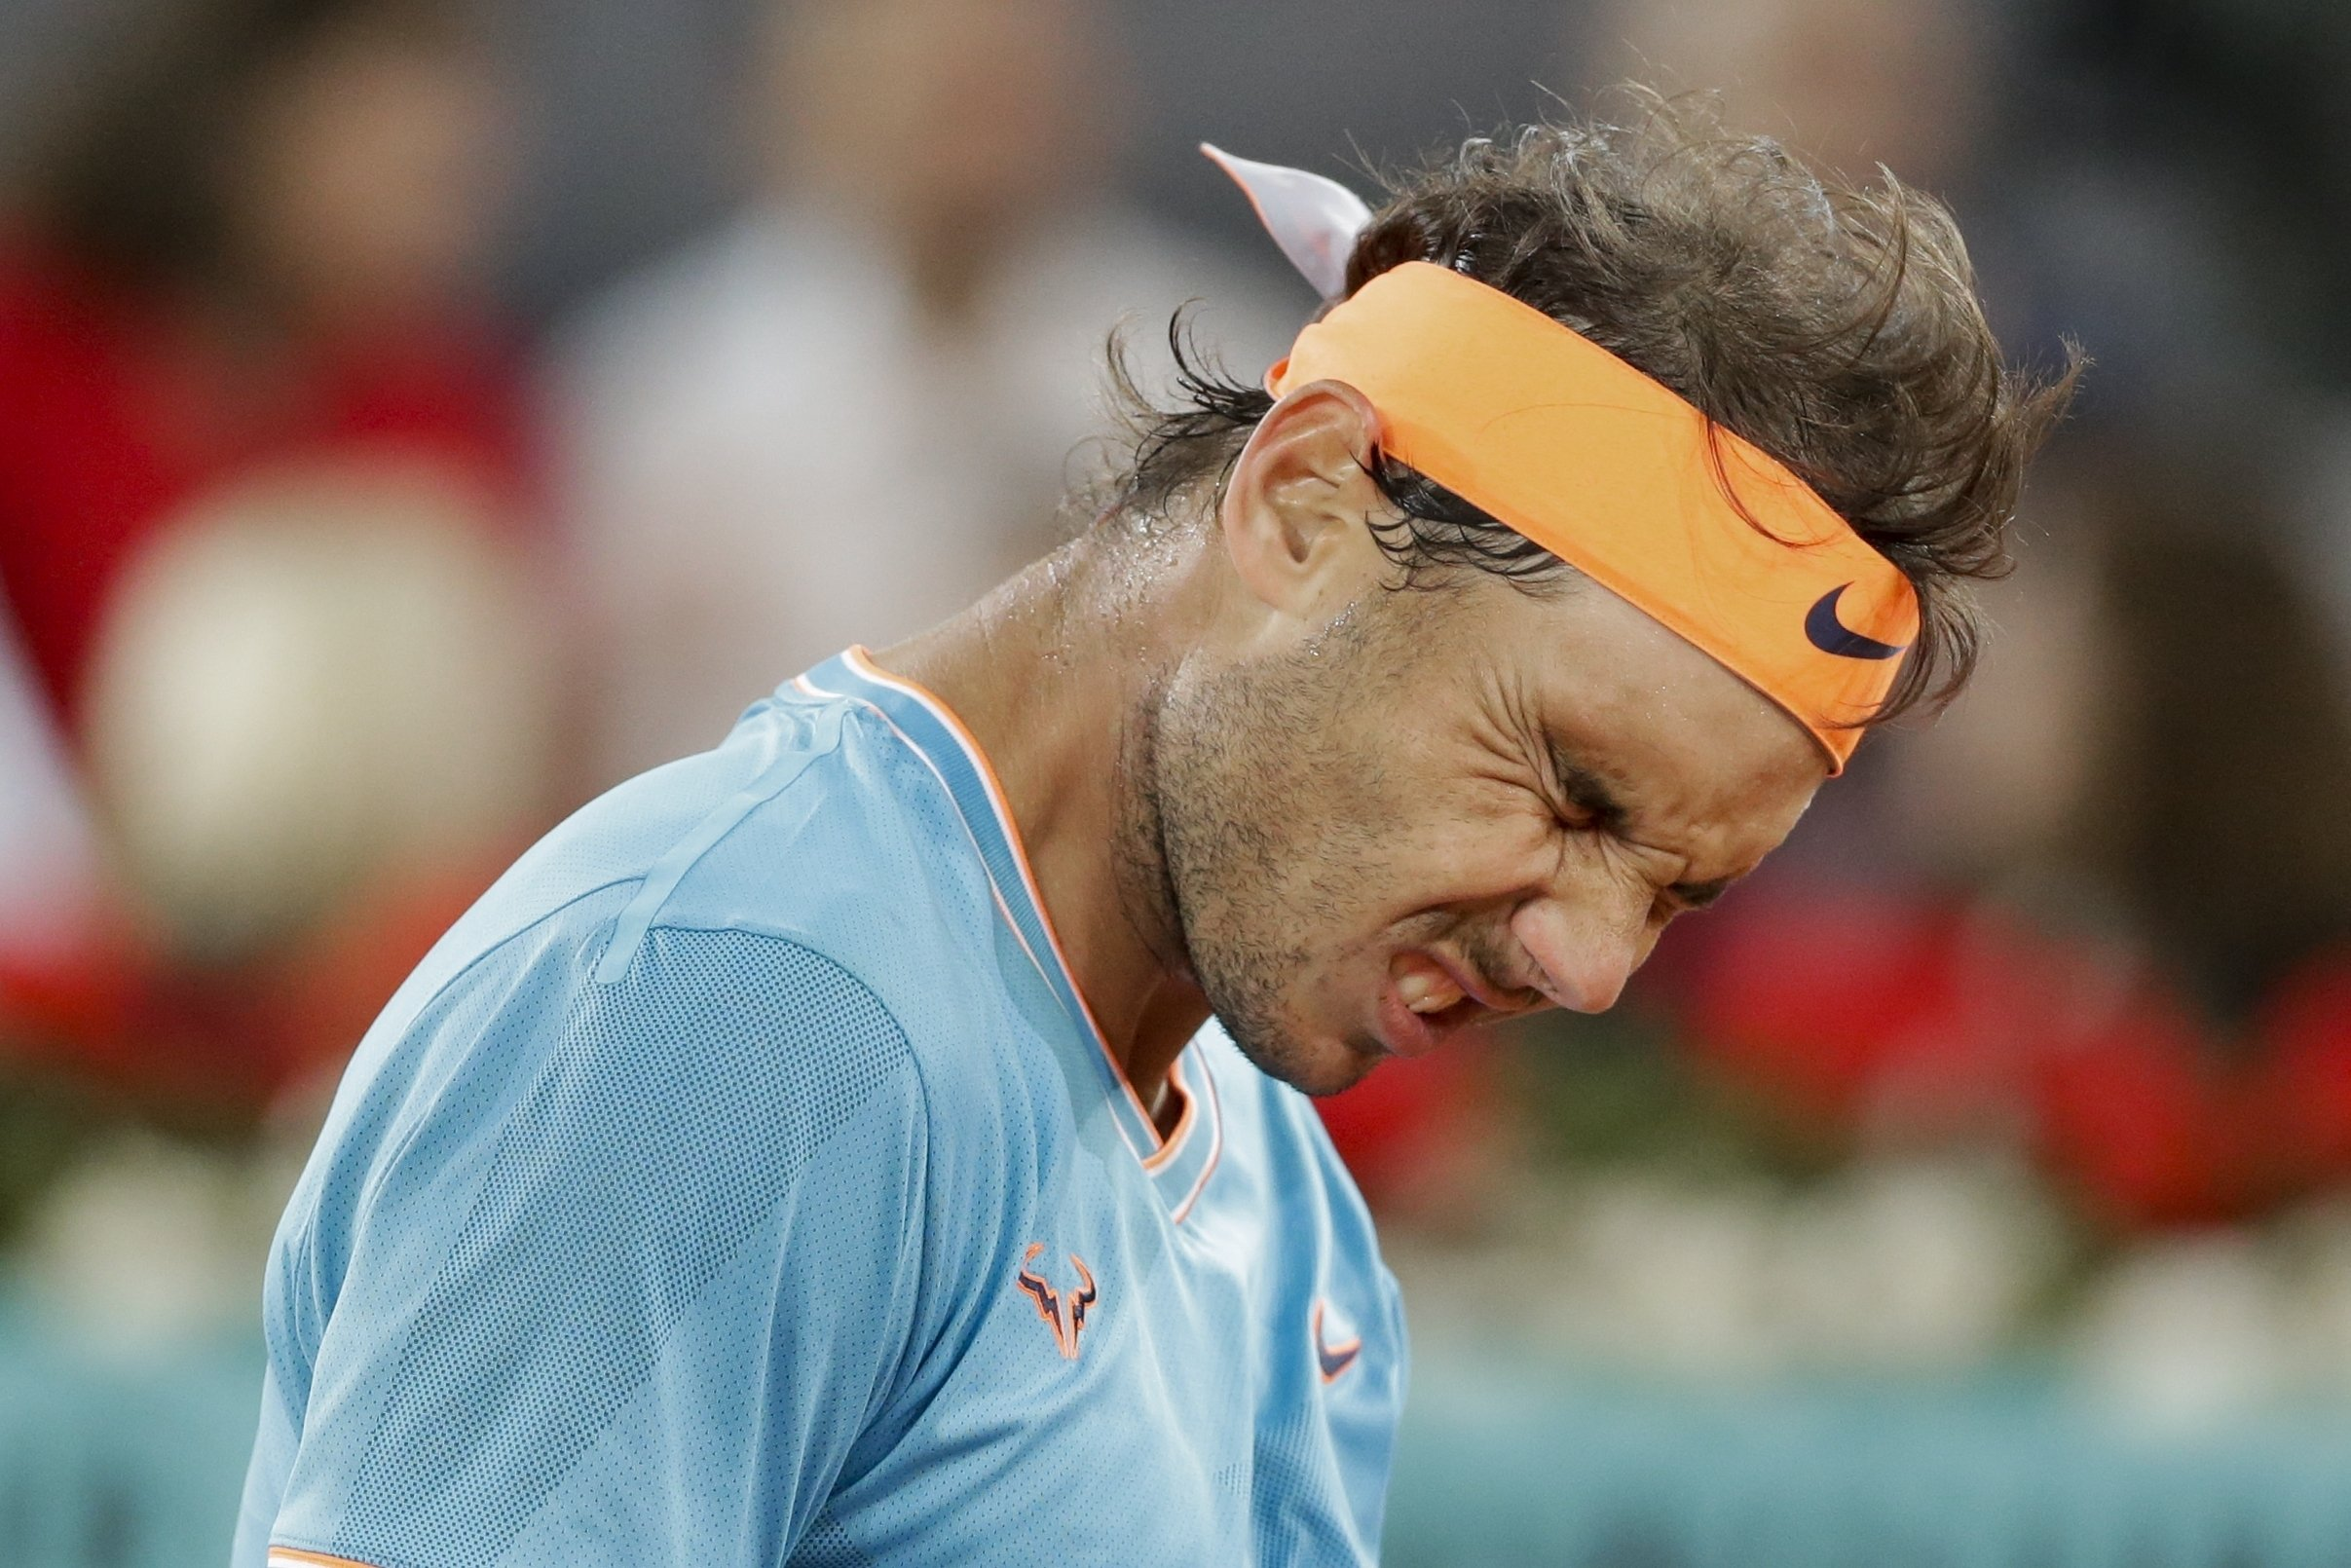 Nadal Loses To Tsitsipas In Madrid As Clay Slump Continues